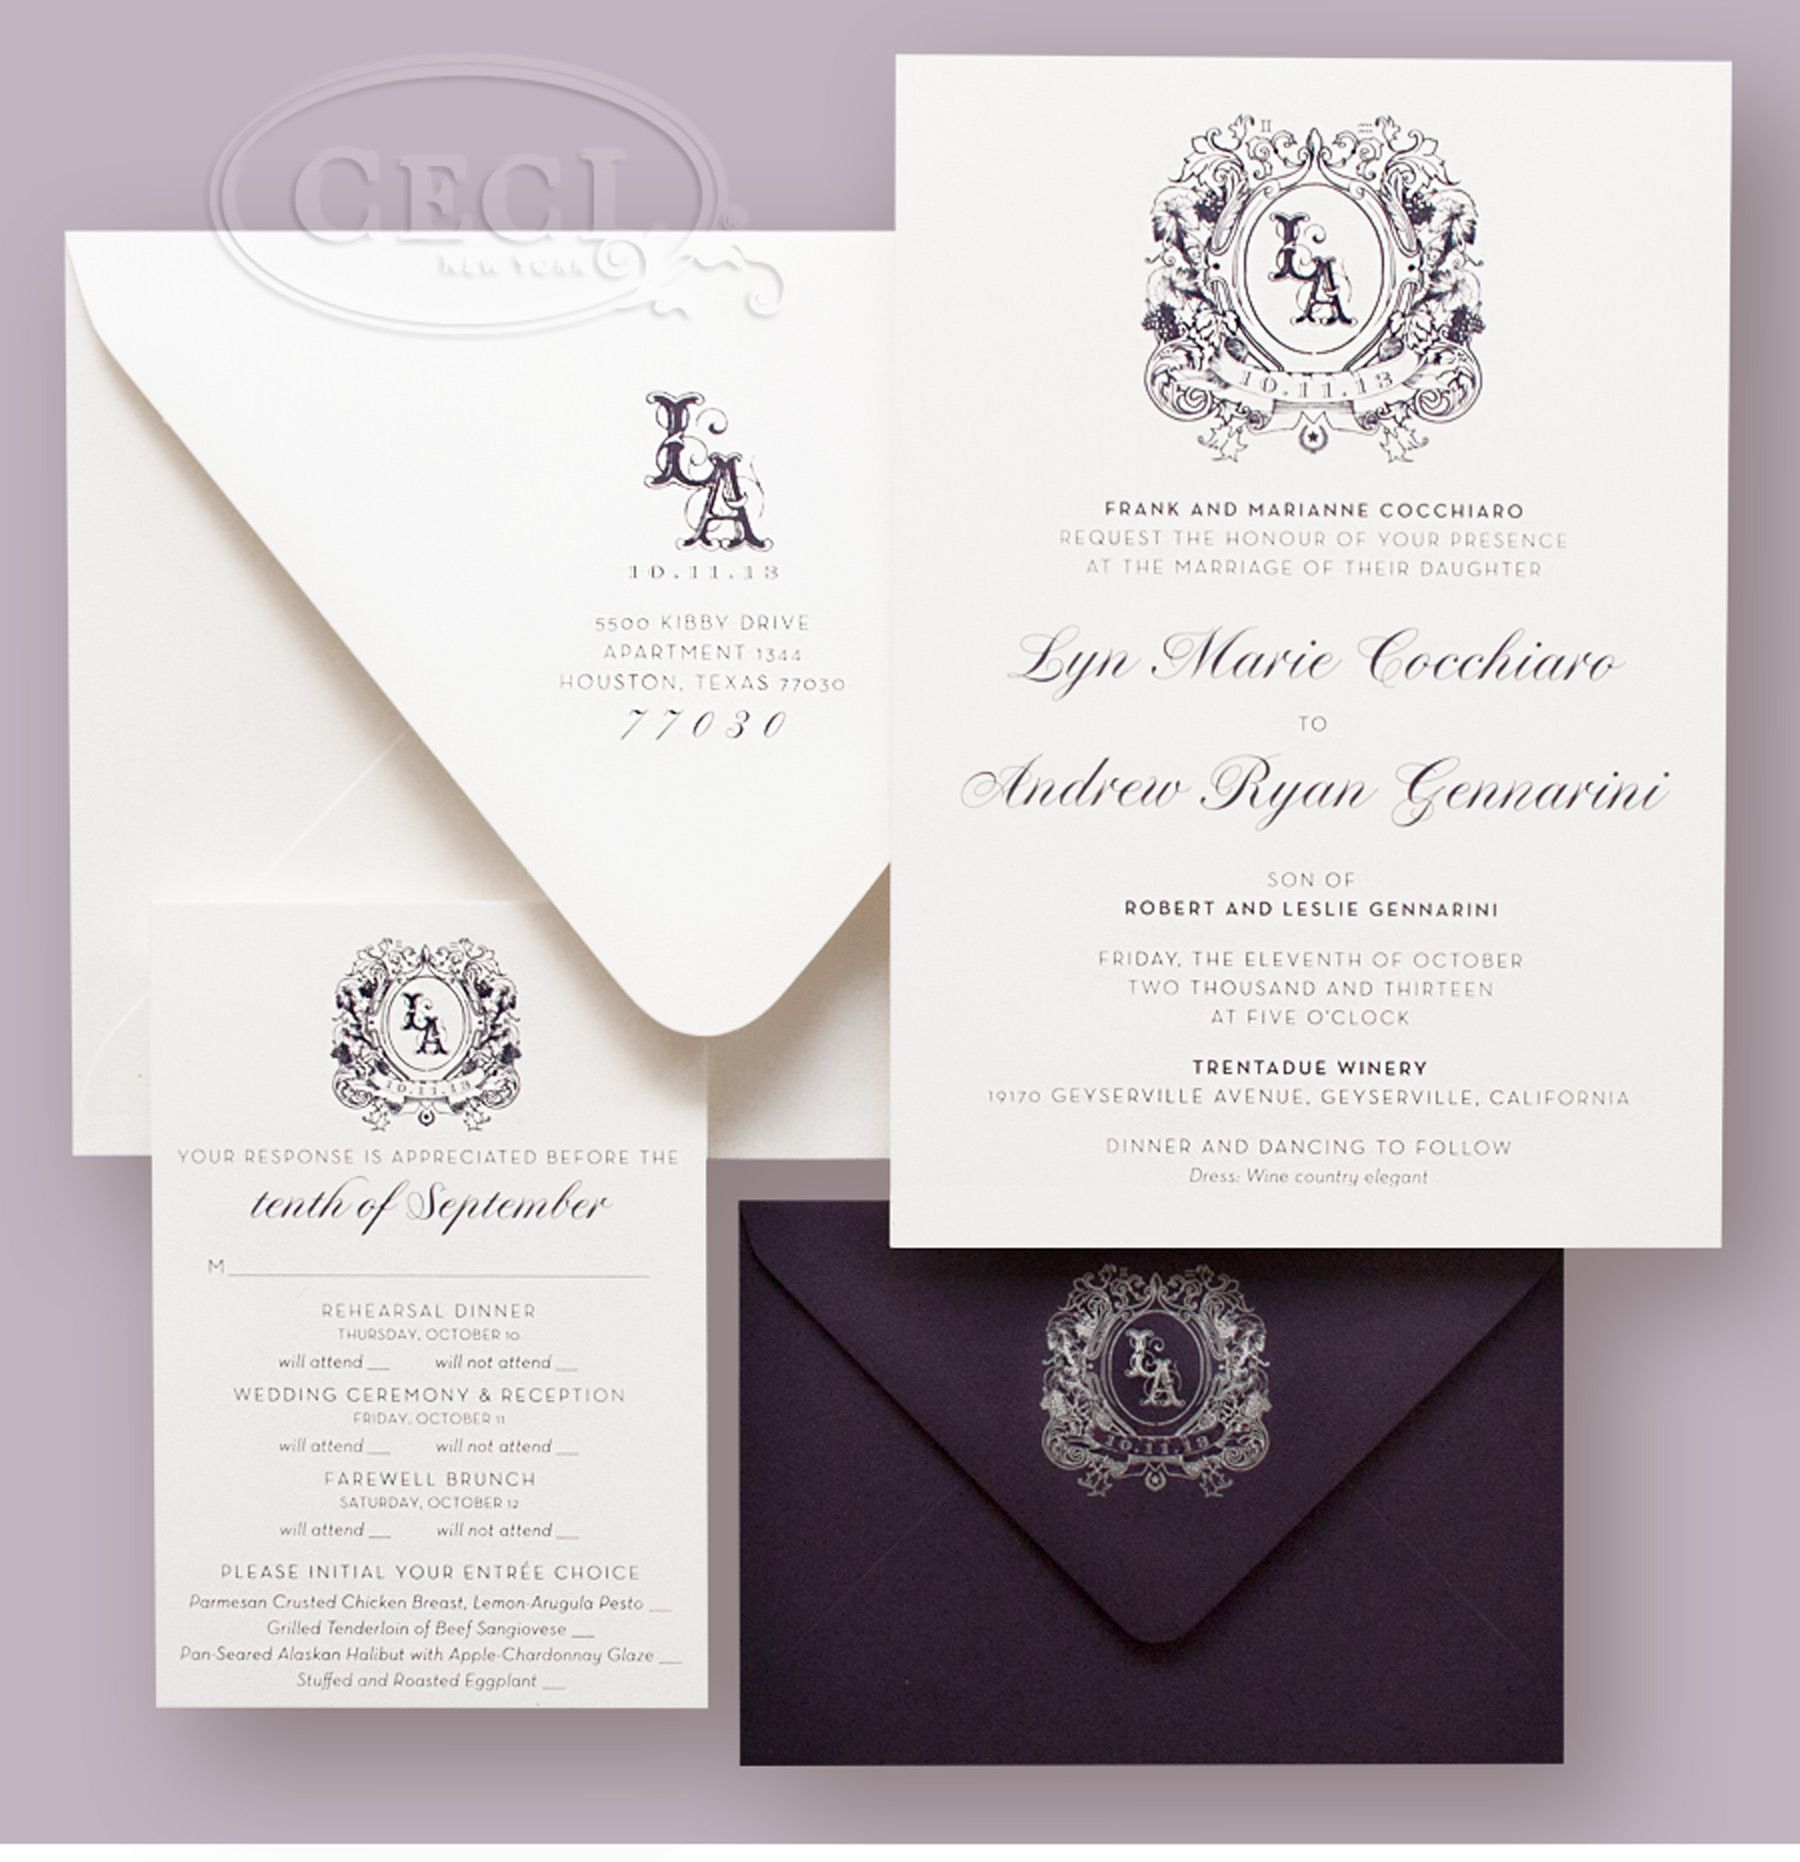 Luxury Wedding Invitations by Ceci New York - Our Muse - Vineyard ...